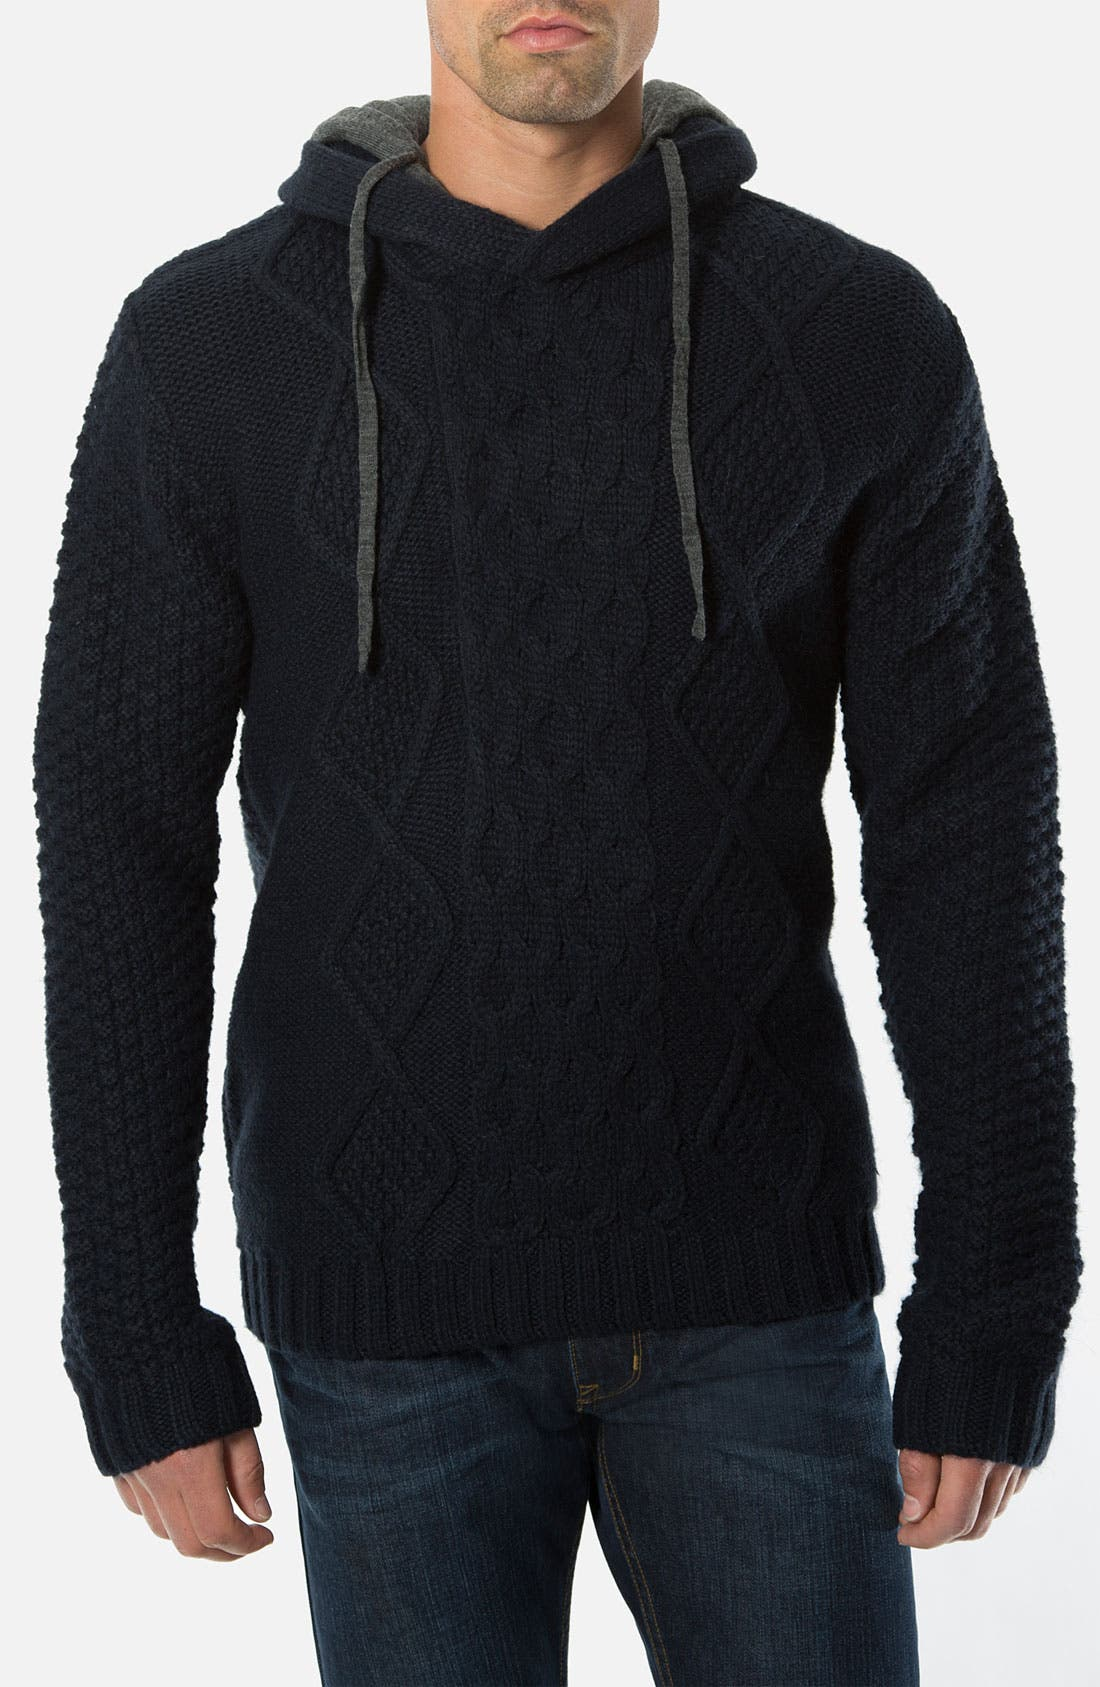 Main Image - 7 Diamonds 'Portillo' Cable Knit Sweater with Removable Hood